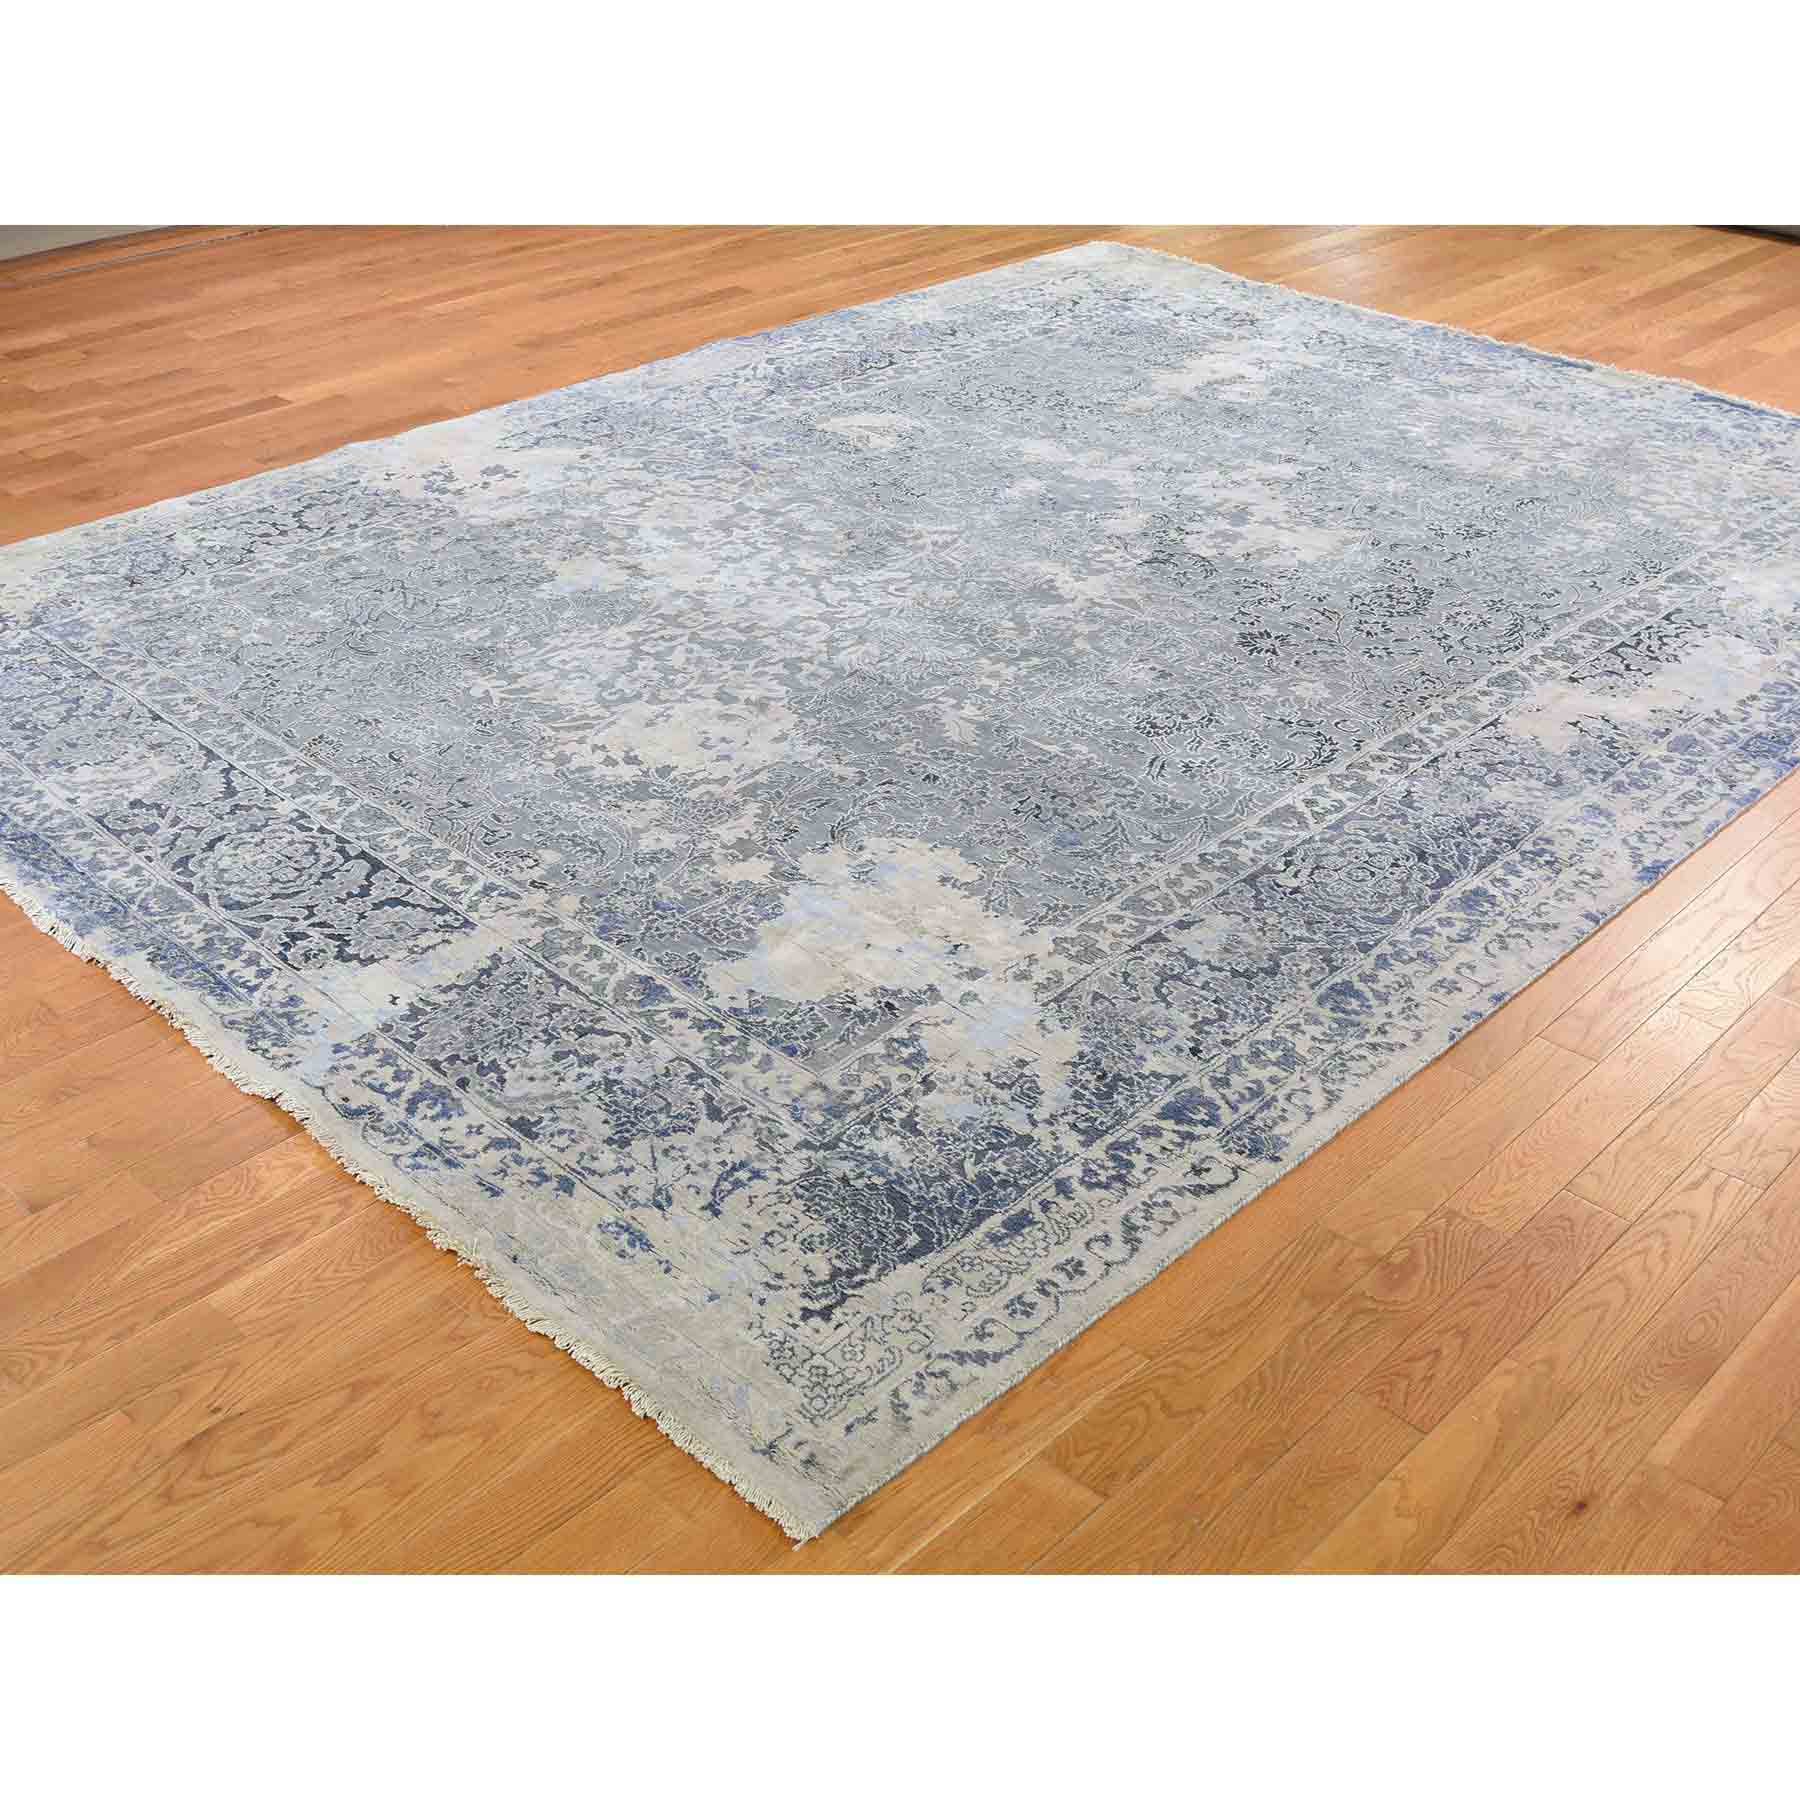 Transitional-Hand-Knotted-Rug-231280